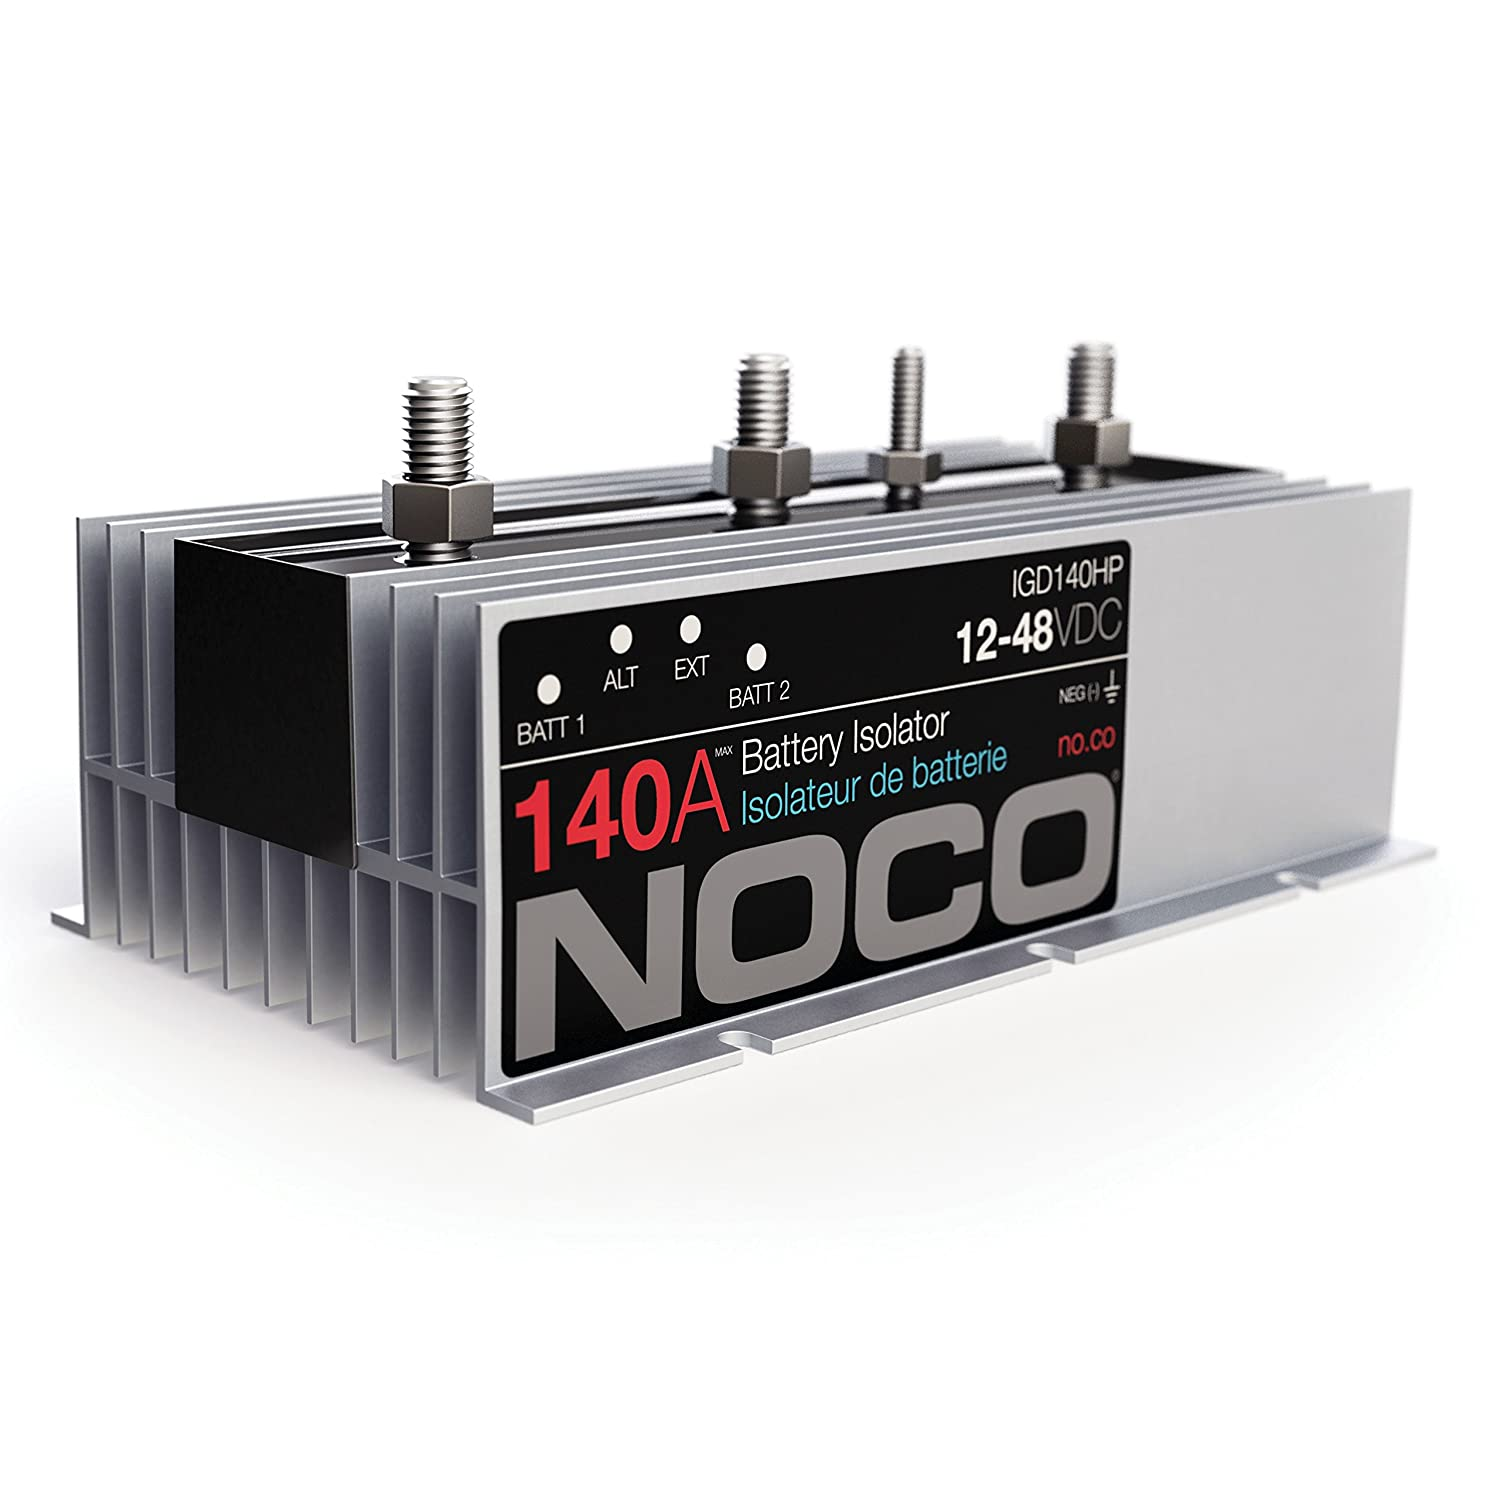 Amazon.com: NOCO IGD140HP 140 Amp Battery Isolator: Automotive